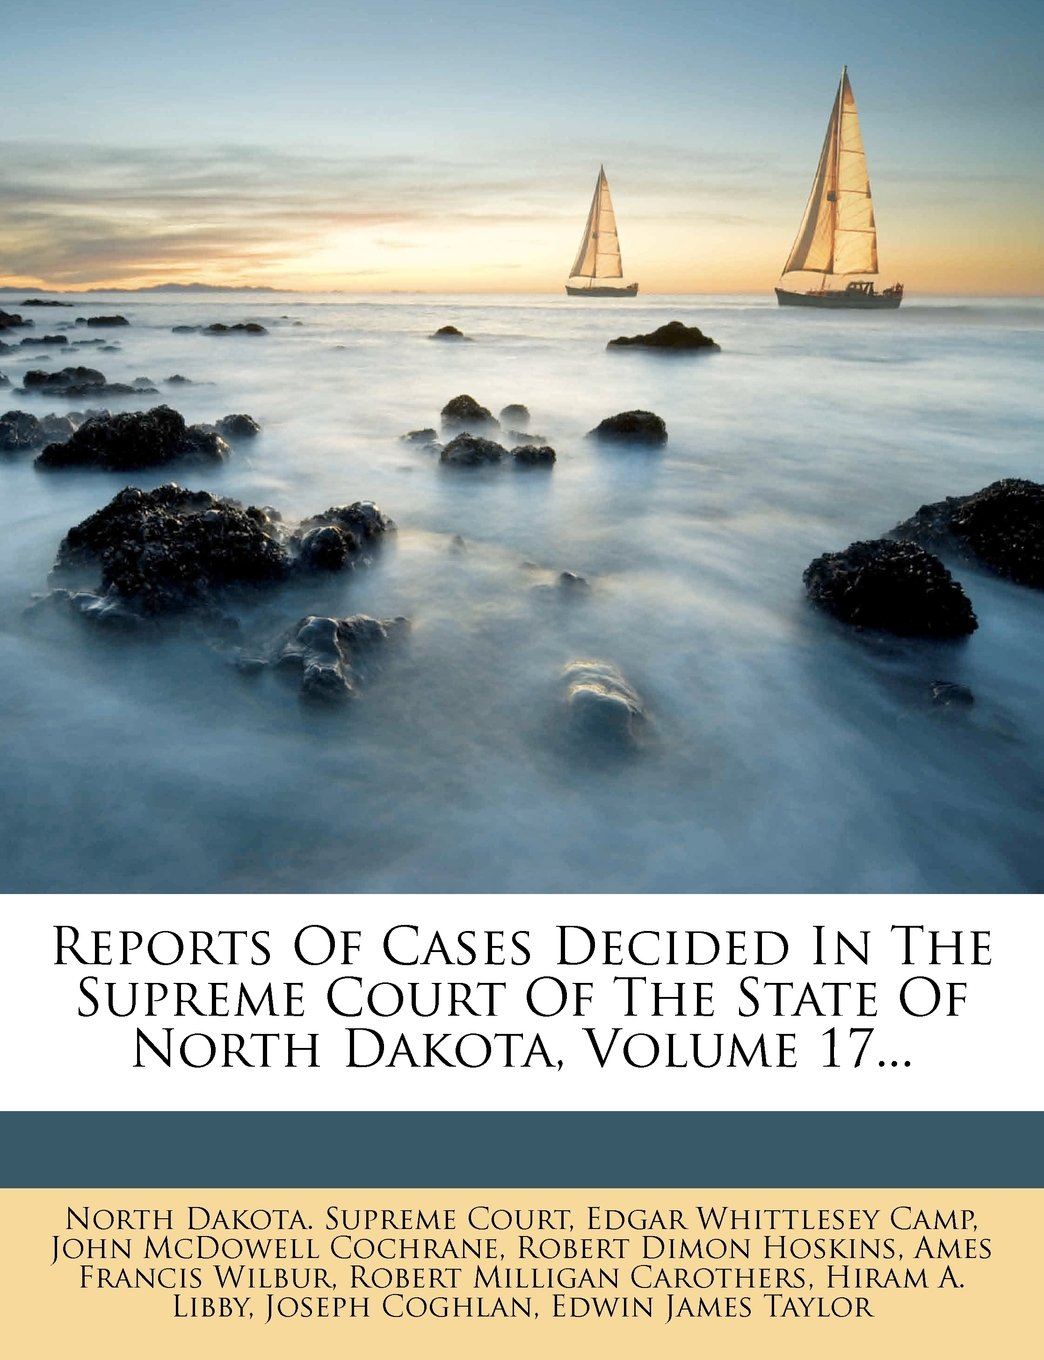 Reports Of Cases Decided In The Supreme Court Of The State Of North Dakota, Volume 17... pdf